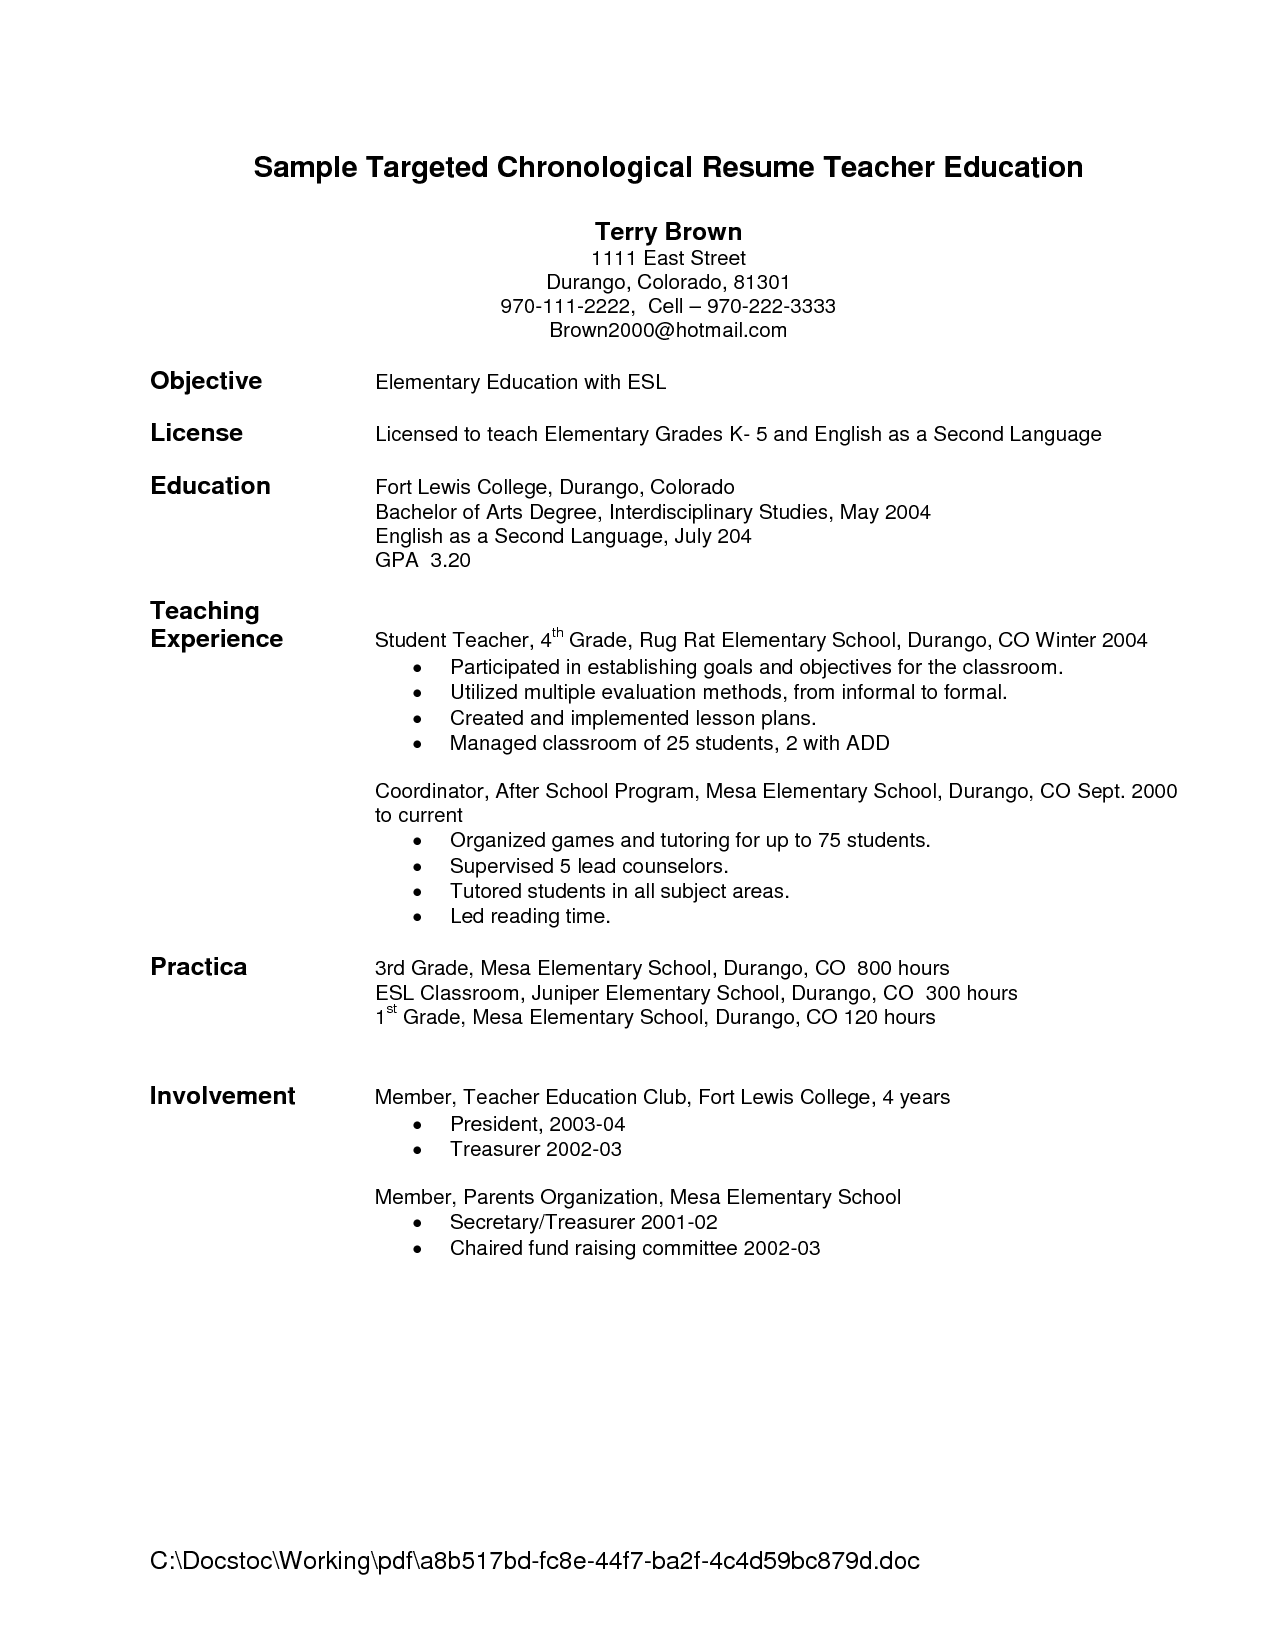 How To Write A Resume Objective For A Teaching Position 15 Objective Resume Examples Samplebusinessresume